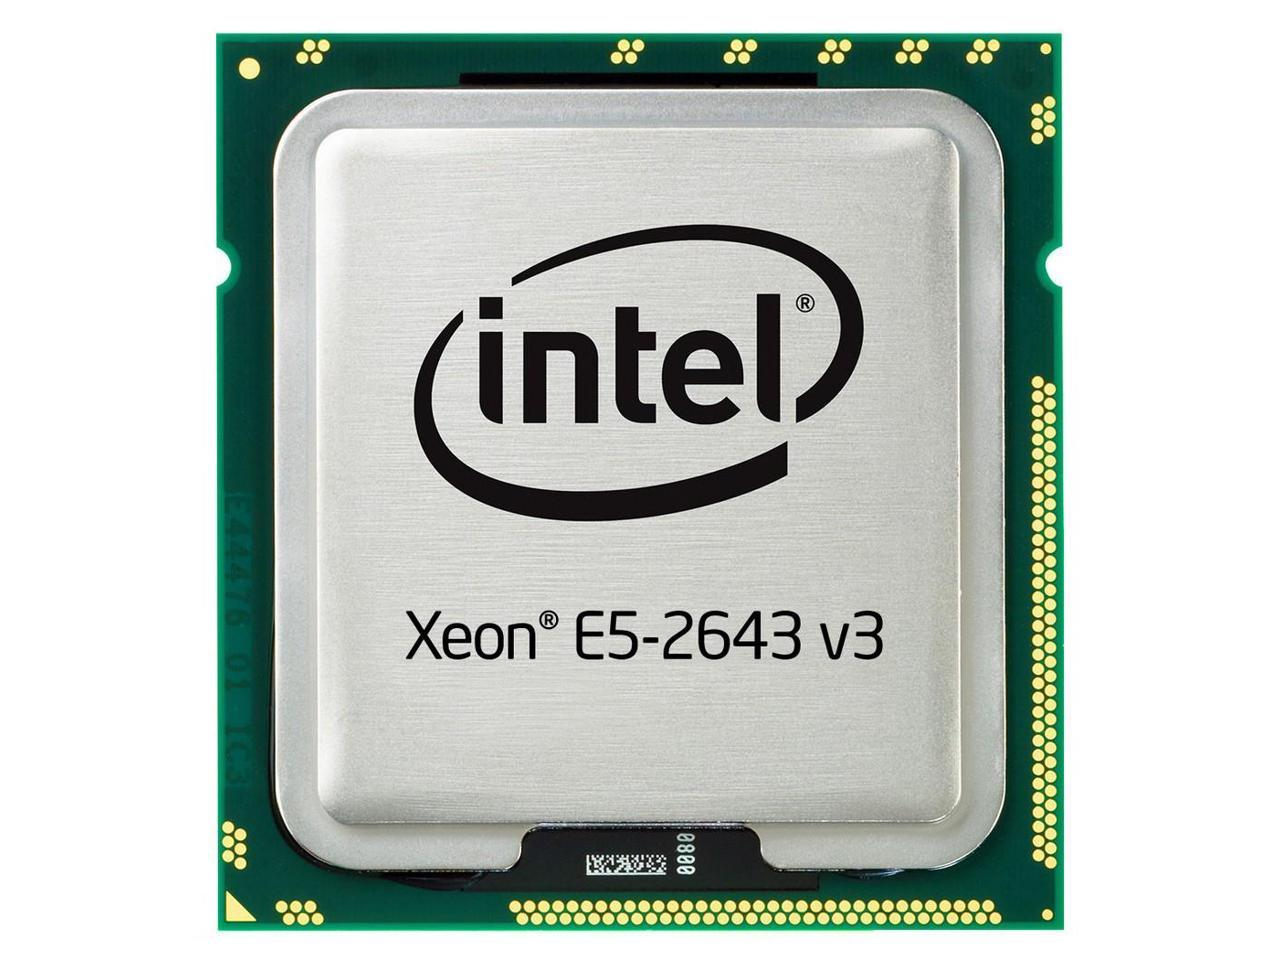 Intel Xeon E5-2643 V3 3.4GHz LGA2011-3 CPU Processor SR204